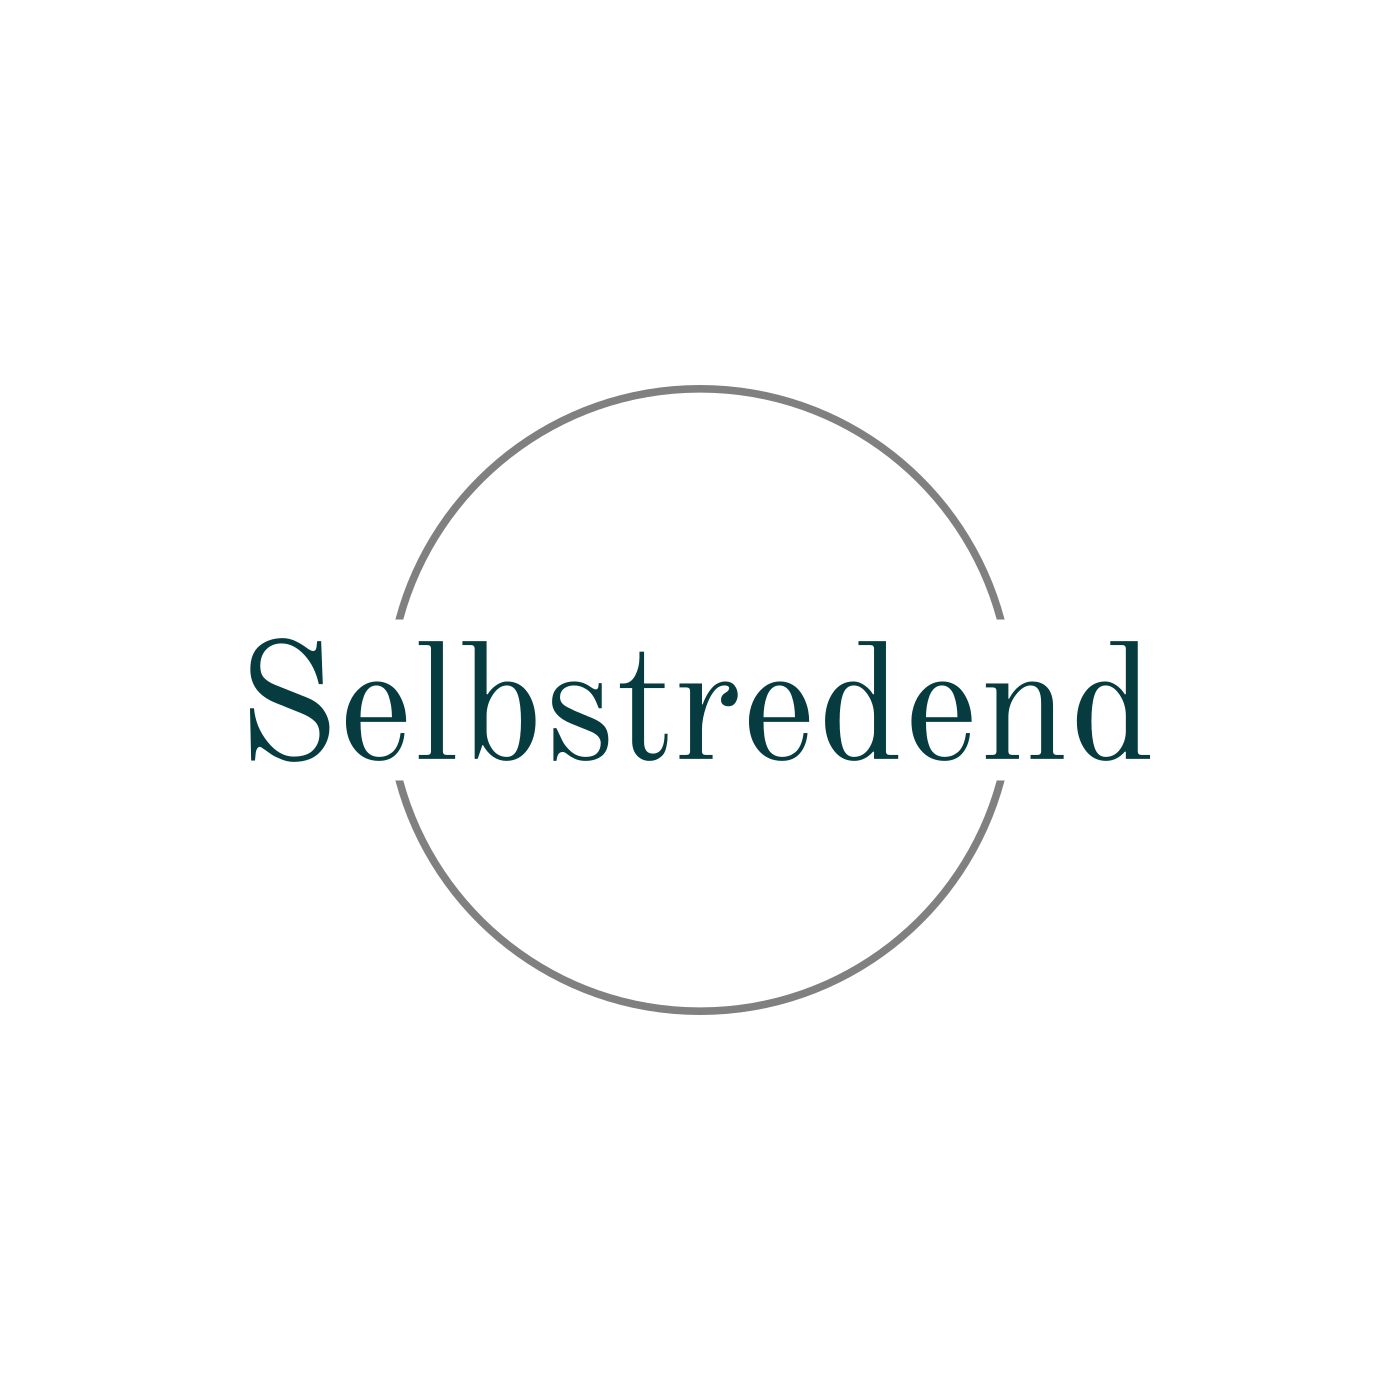 Selbstredend